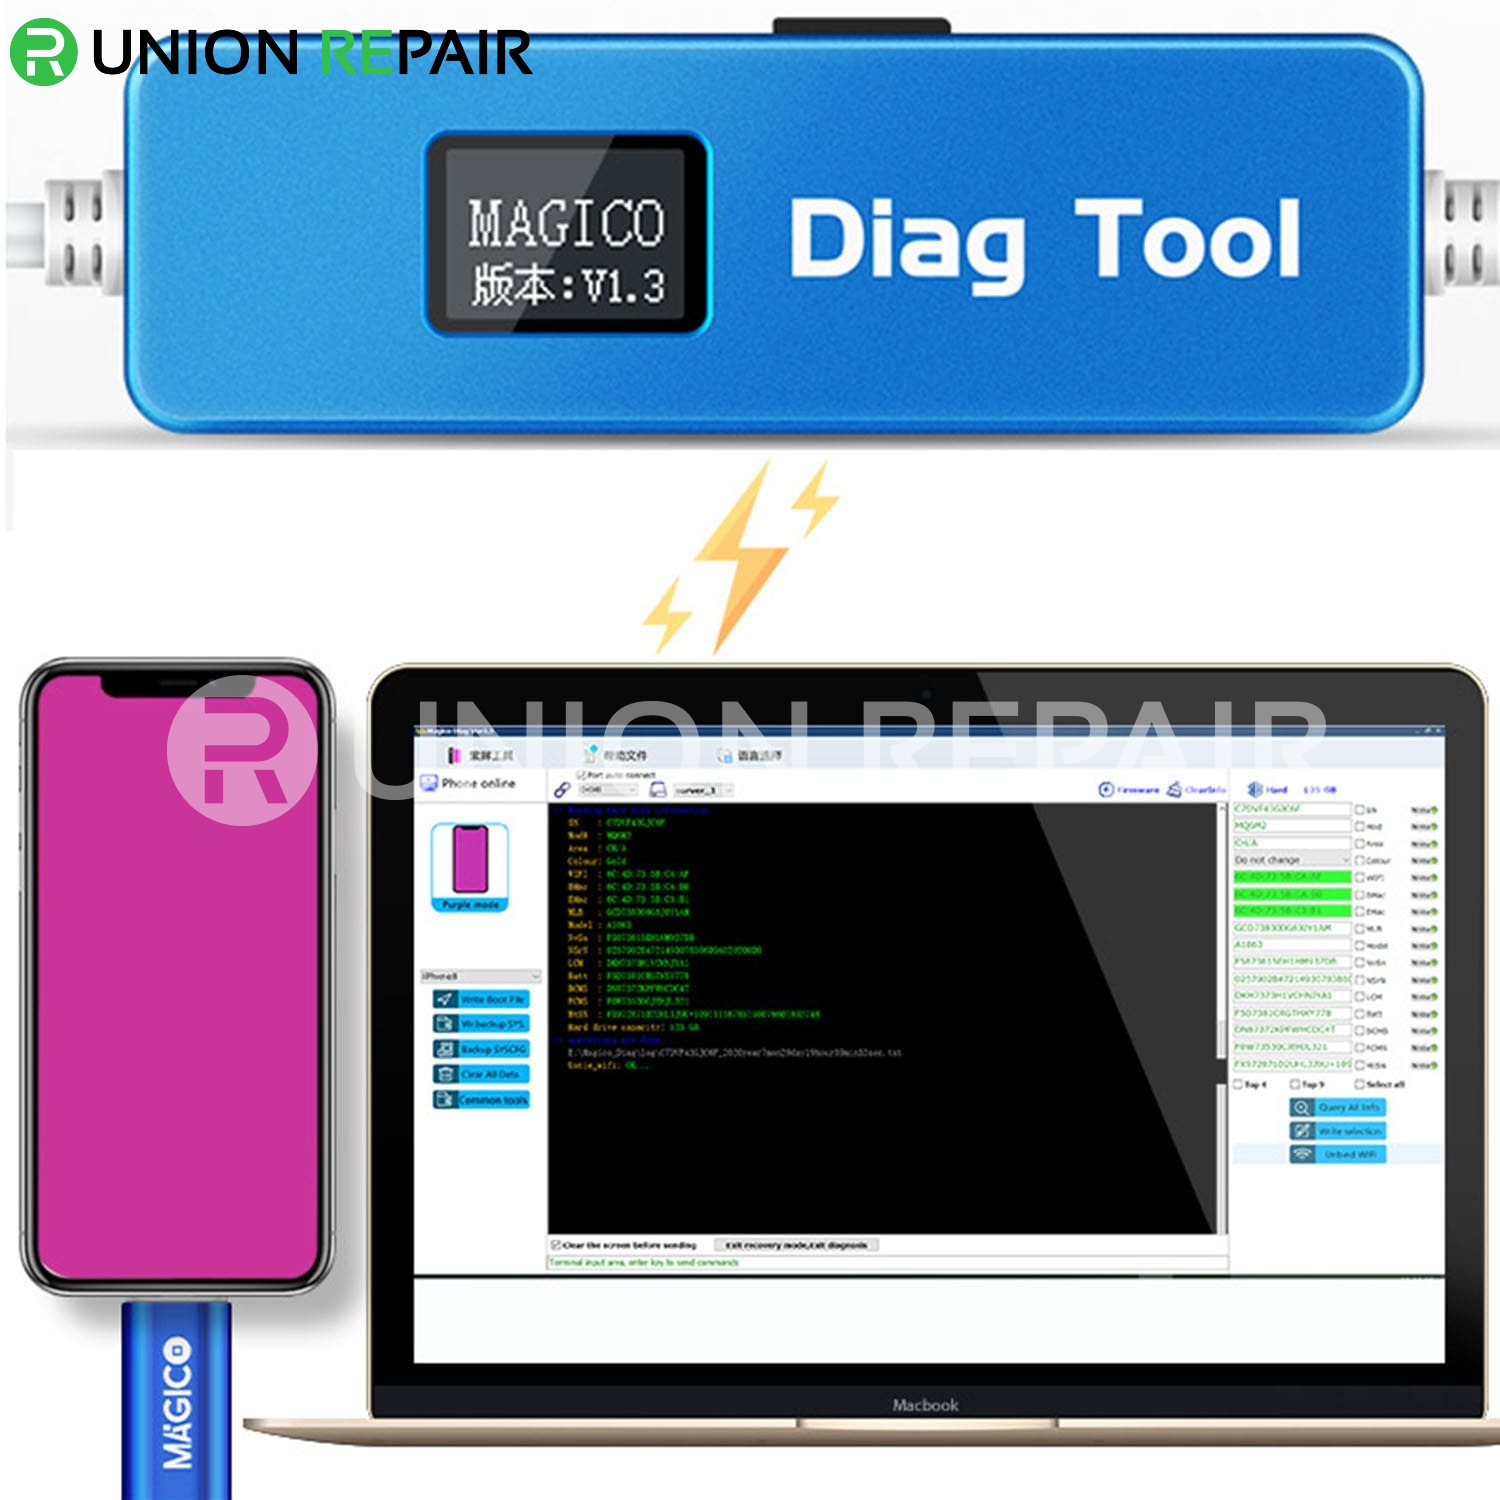 Magico Diag DFU Mode Tool for iPhone iPad